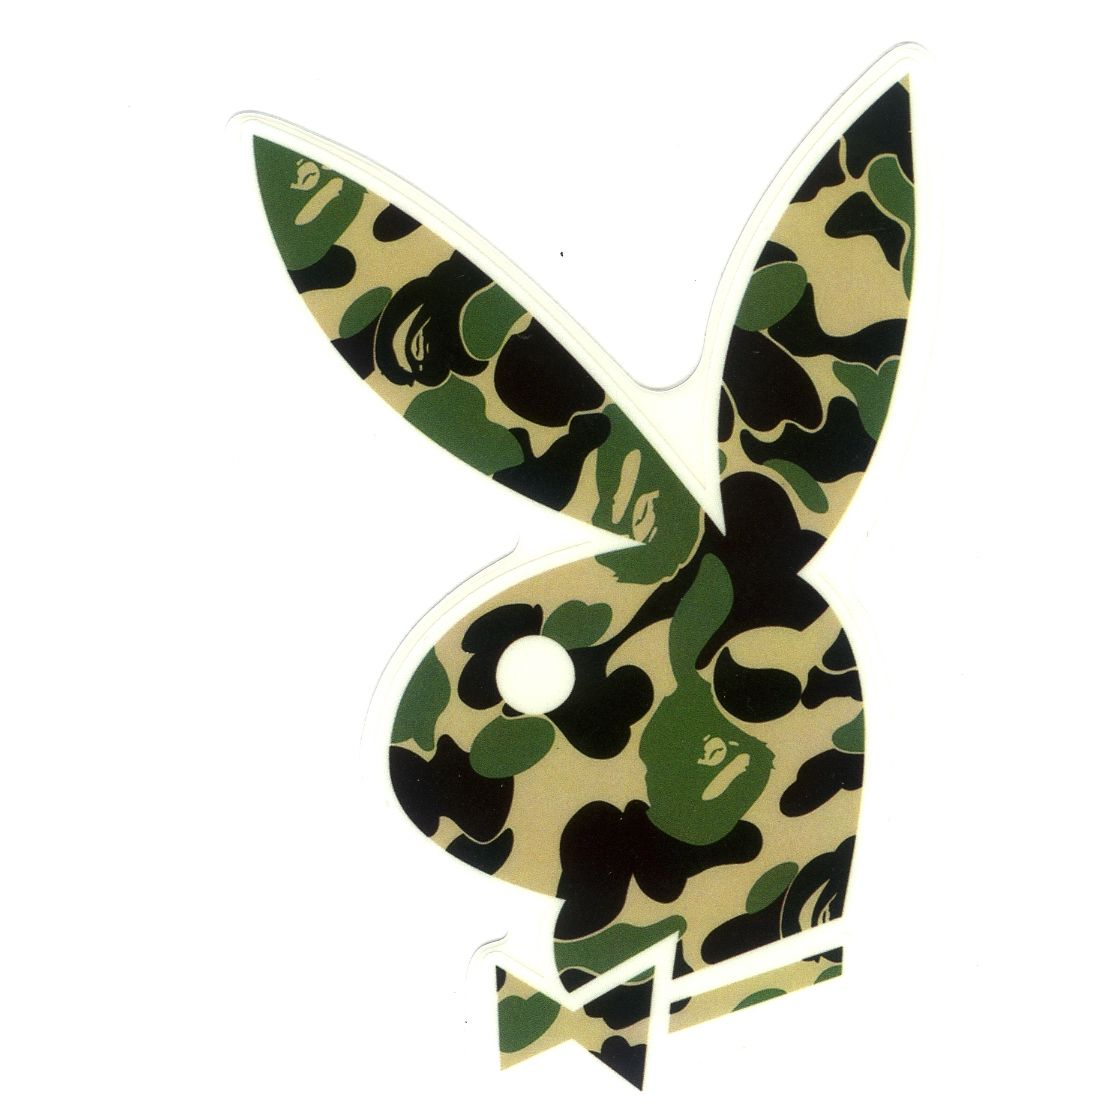 1249 playboy x a bathing ape camo height 8 cm decal sticker decalstar com